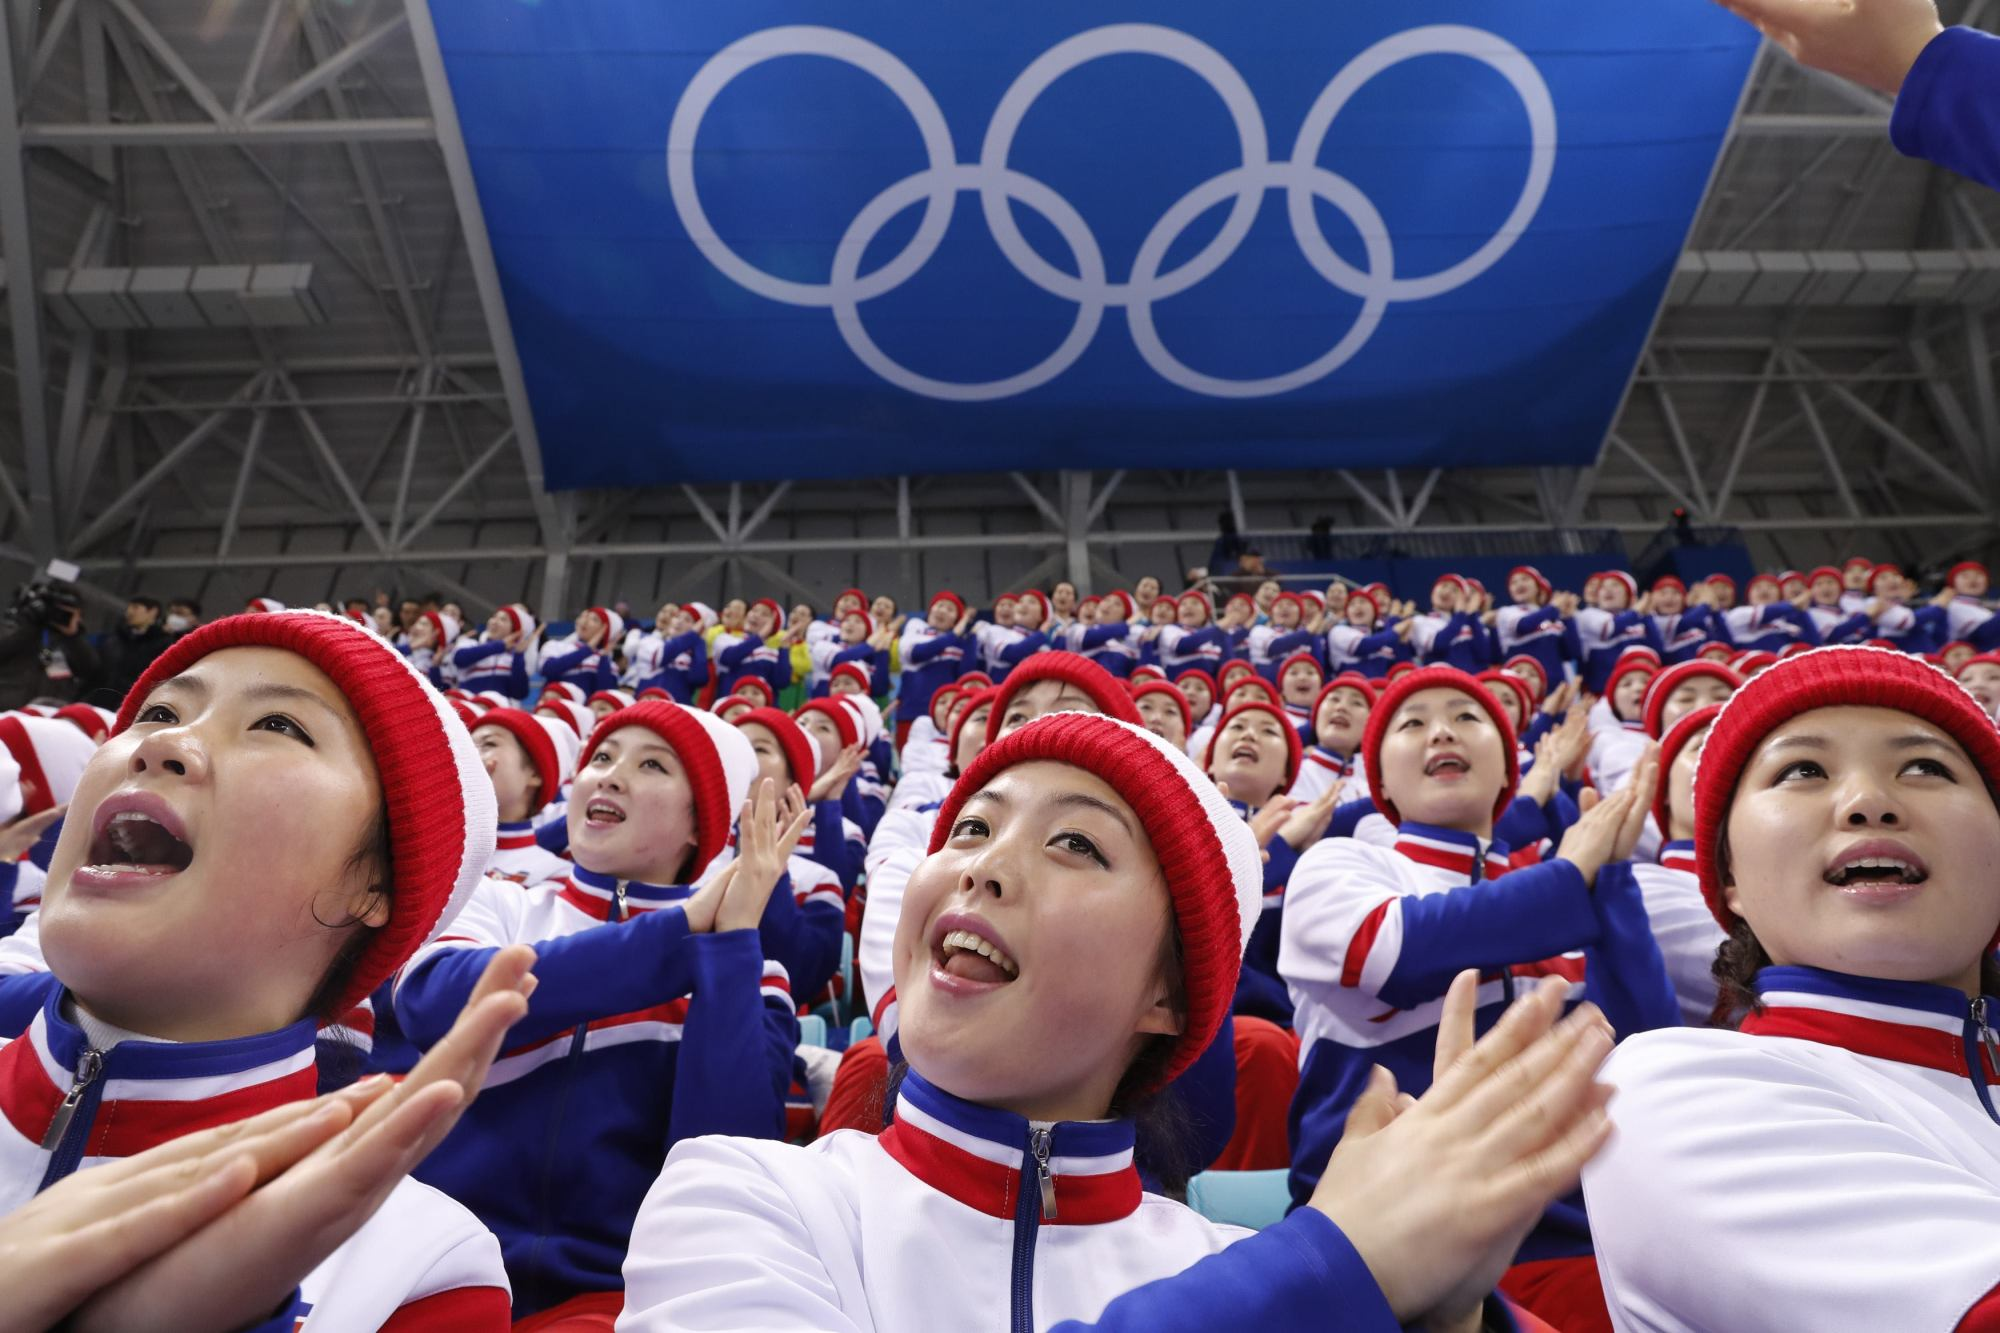 North Korean cheerleaders attend the Czech Republic-South Korea men's ice hockey match in Gangneung, South Korea, on Thursday. | REUTERS